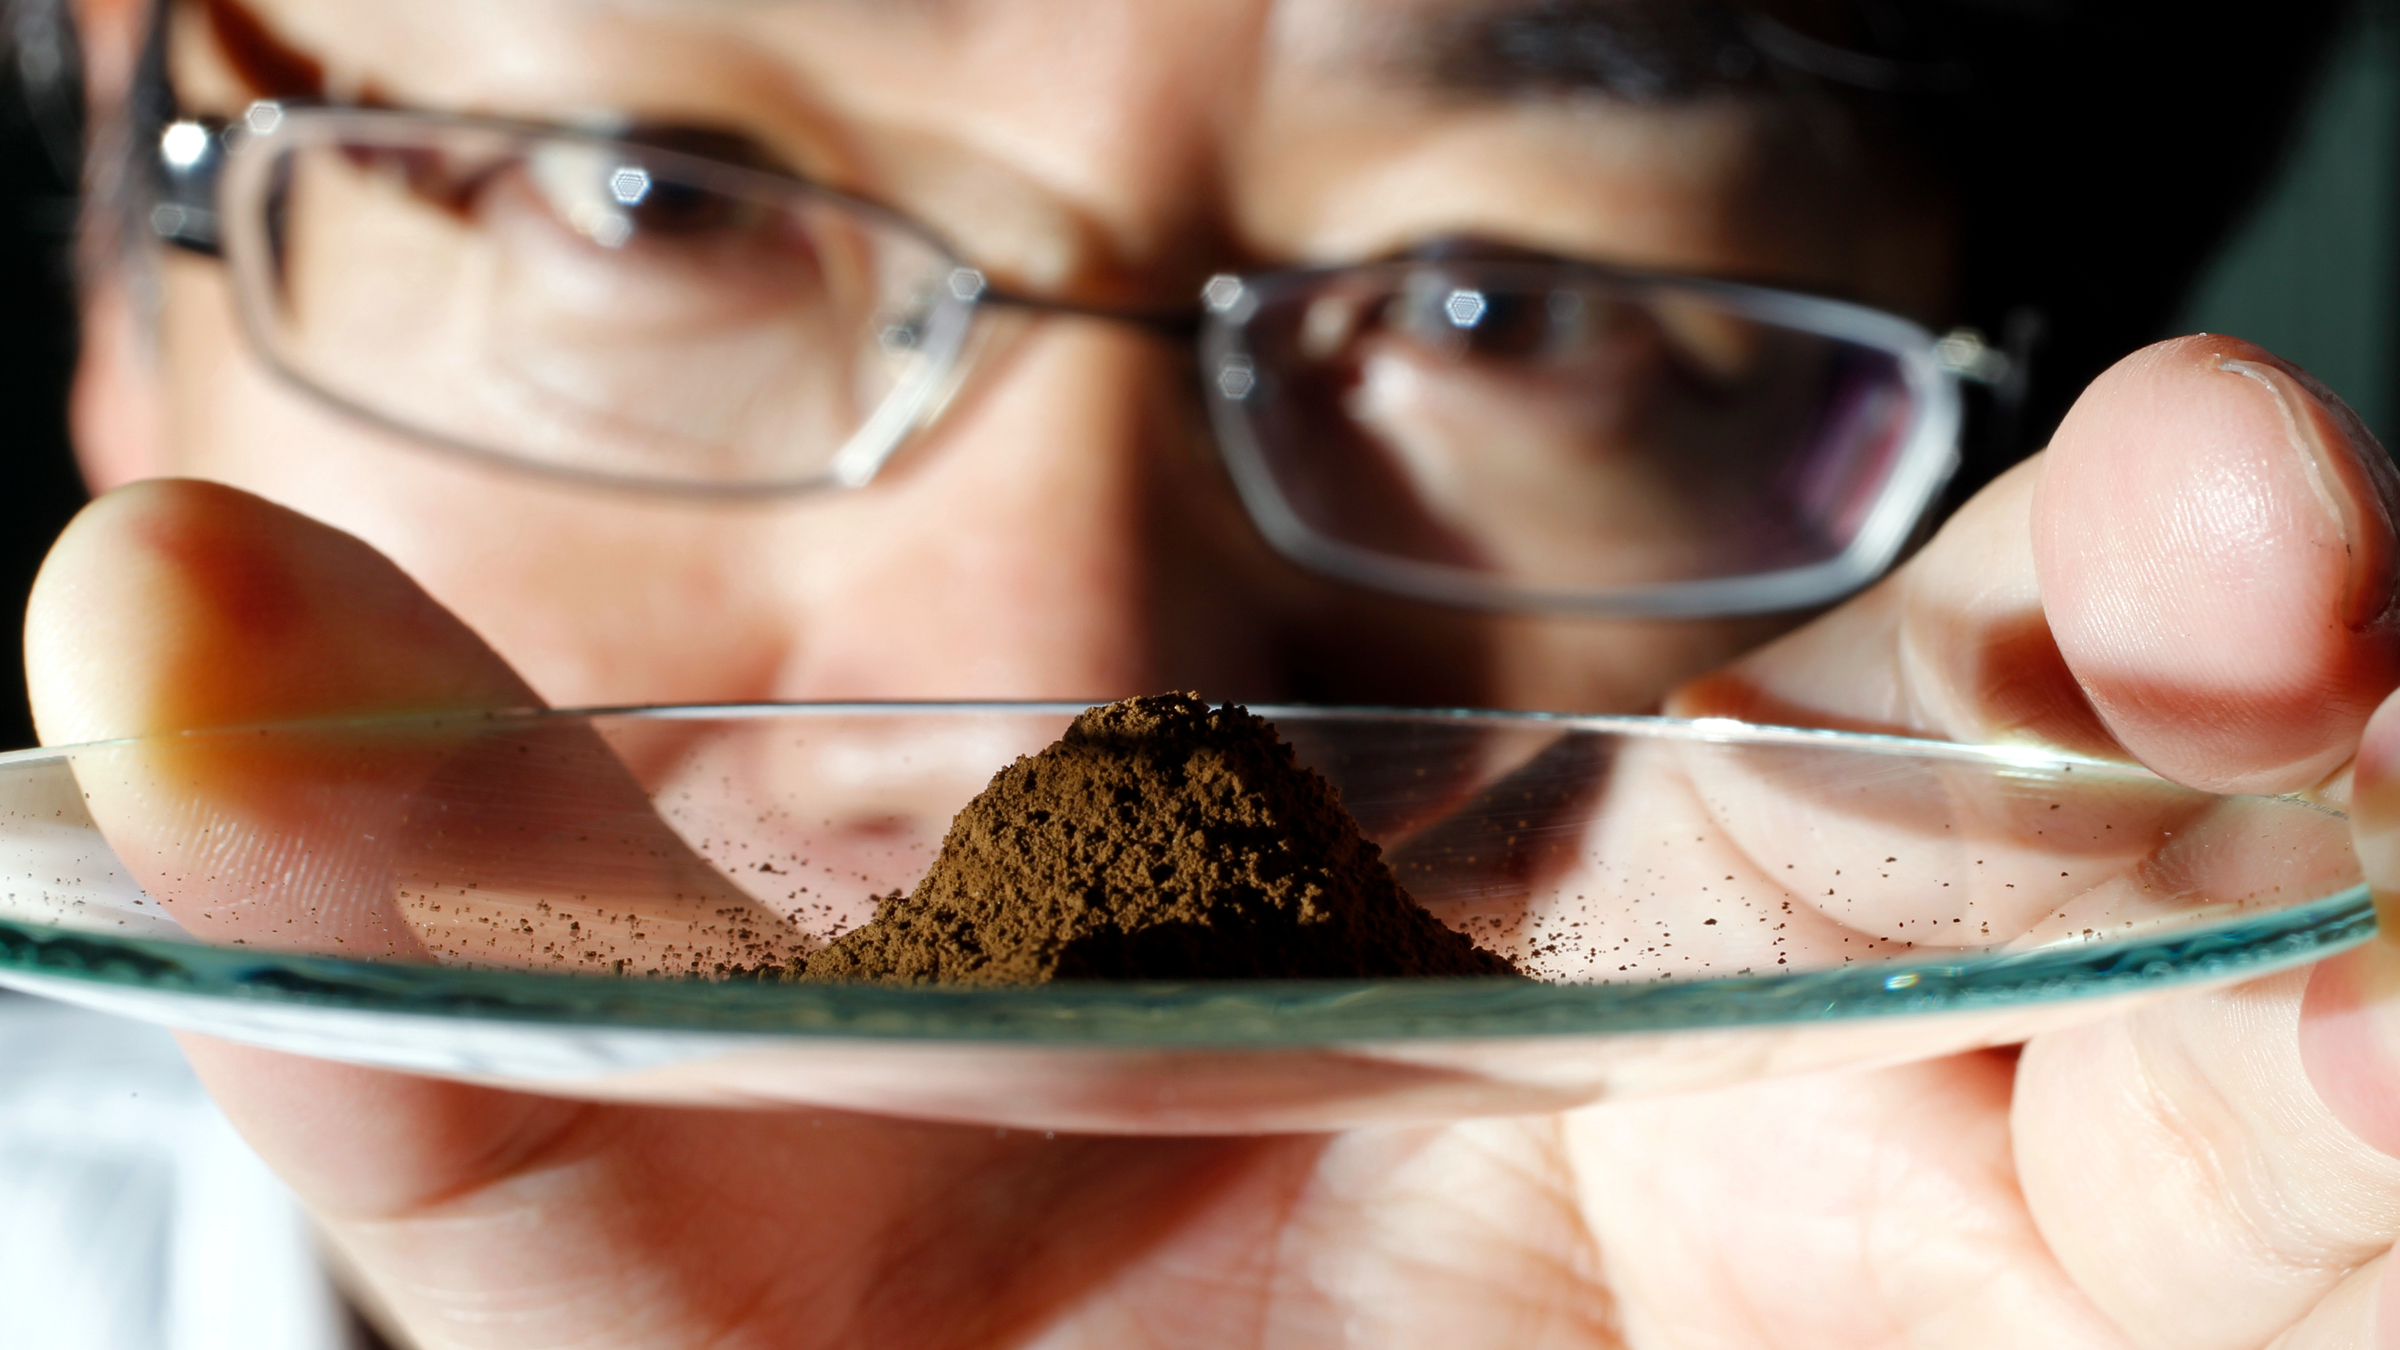 Yasuhiro Kato, an associate professor of earth science at the University of Tokyo, displays a mud sample extracted from the depths of about 4,000 metres (13,123 ft) below the Pacific ocean surface where rare earth elements were found, at his laboratory in Tokyo July 5, 2011. Vast deposits of rare earth minerals, crucial in making high-tech electronics products, have been found on the floor of the Pacific Ocean and can be readily extracted, Japanese scientists said on Monday.